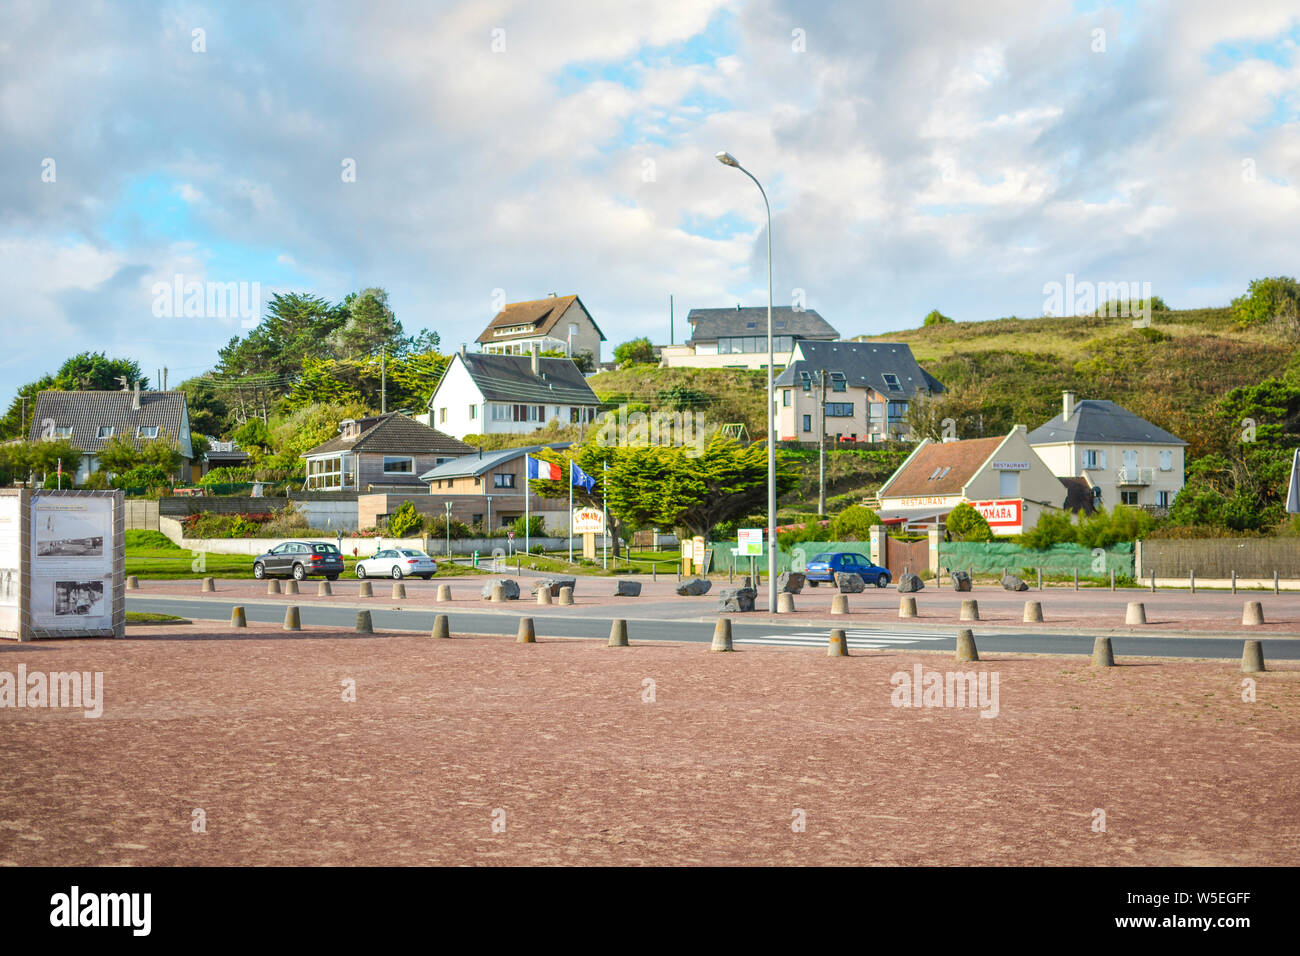 The French village of Vierville-sur-Mer along the coast of the English Channel in Normandy, site of the famous Omaha Beach 1944 D Day invasion. - Stock Photo